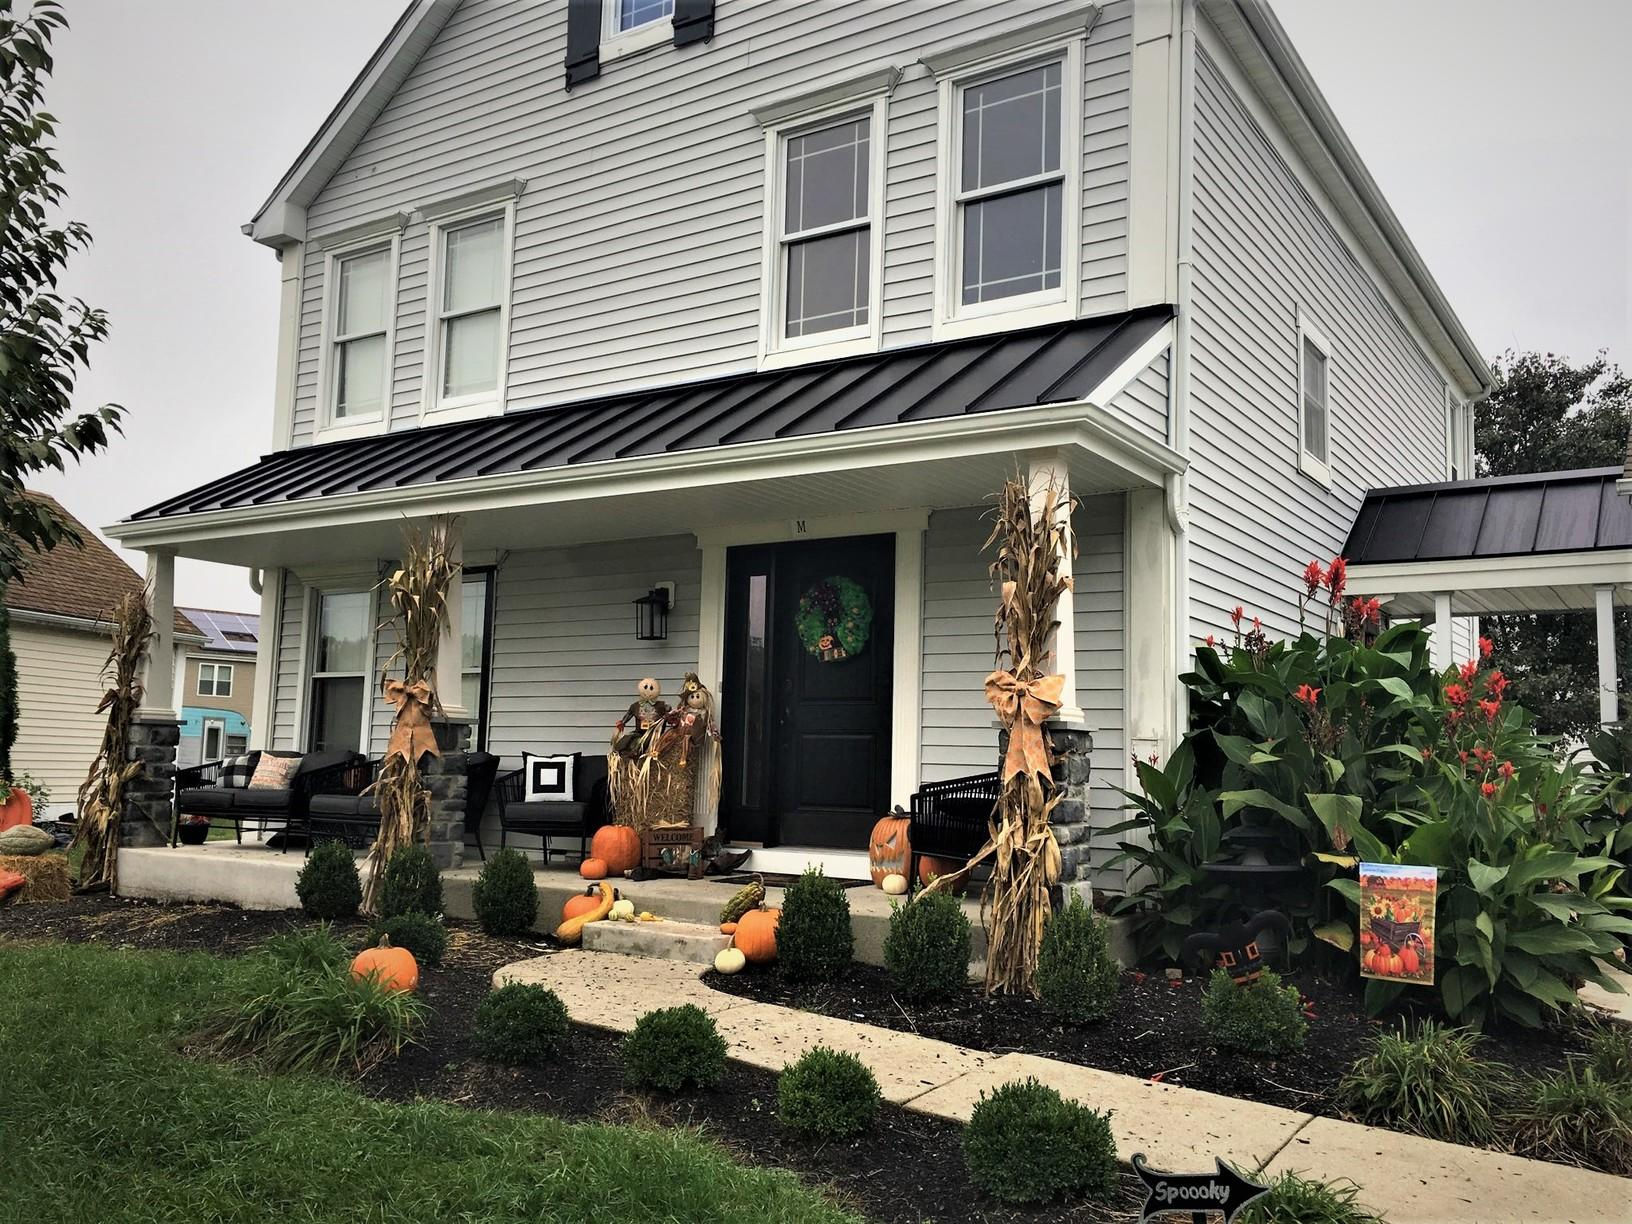 Extending Front Porch, Installing Matte Black Standing Seam Metal Roof, and Replacing Pillars with Stone Face on Bottom in Clayton, NJ